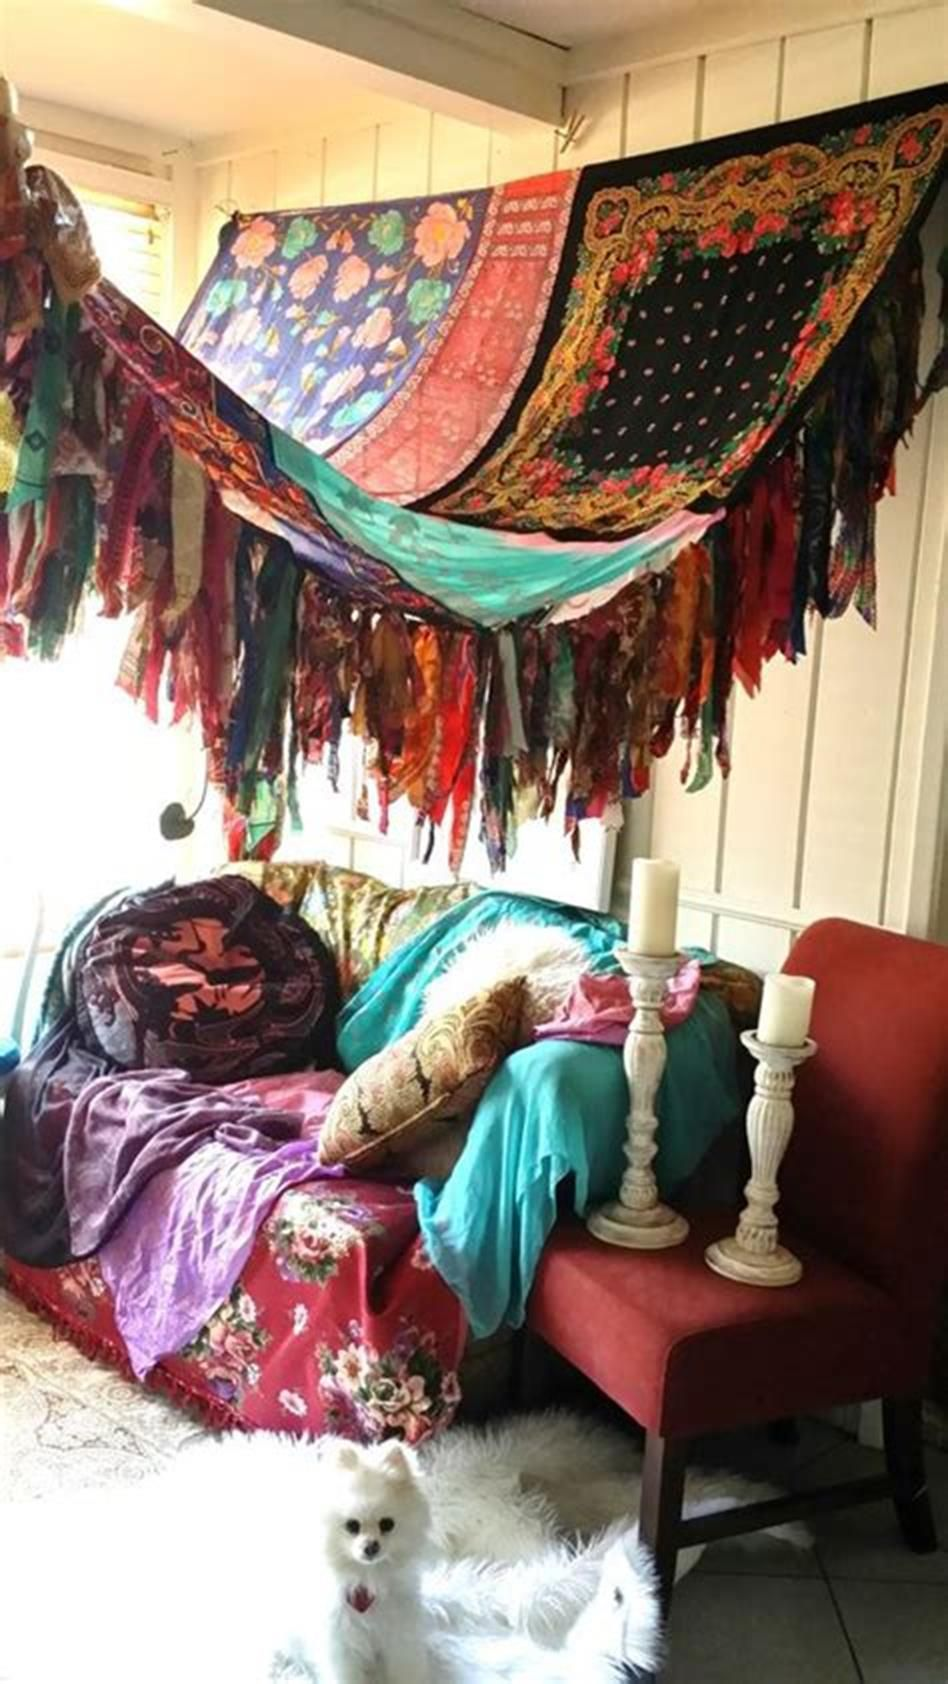 43 Awesome Bohemian Style Bedroom Design and Decorating Ideas images